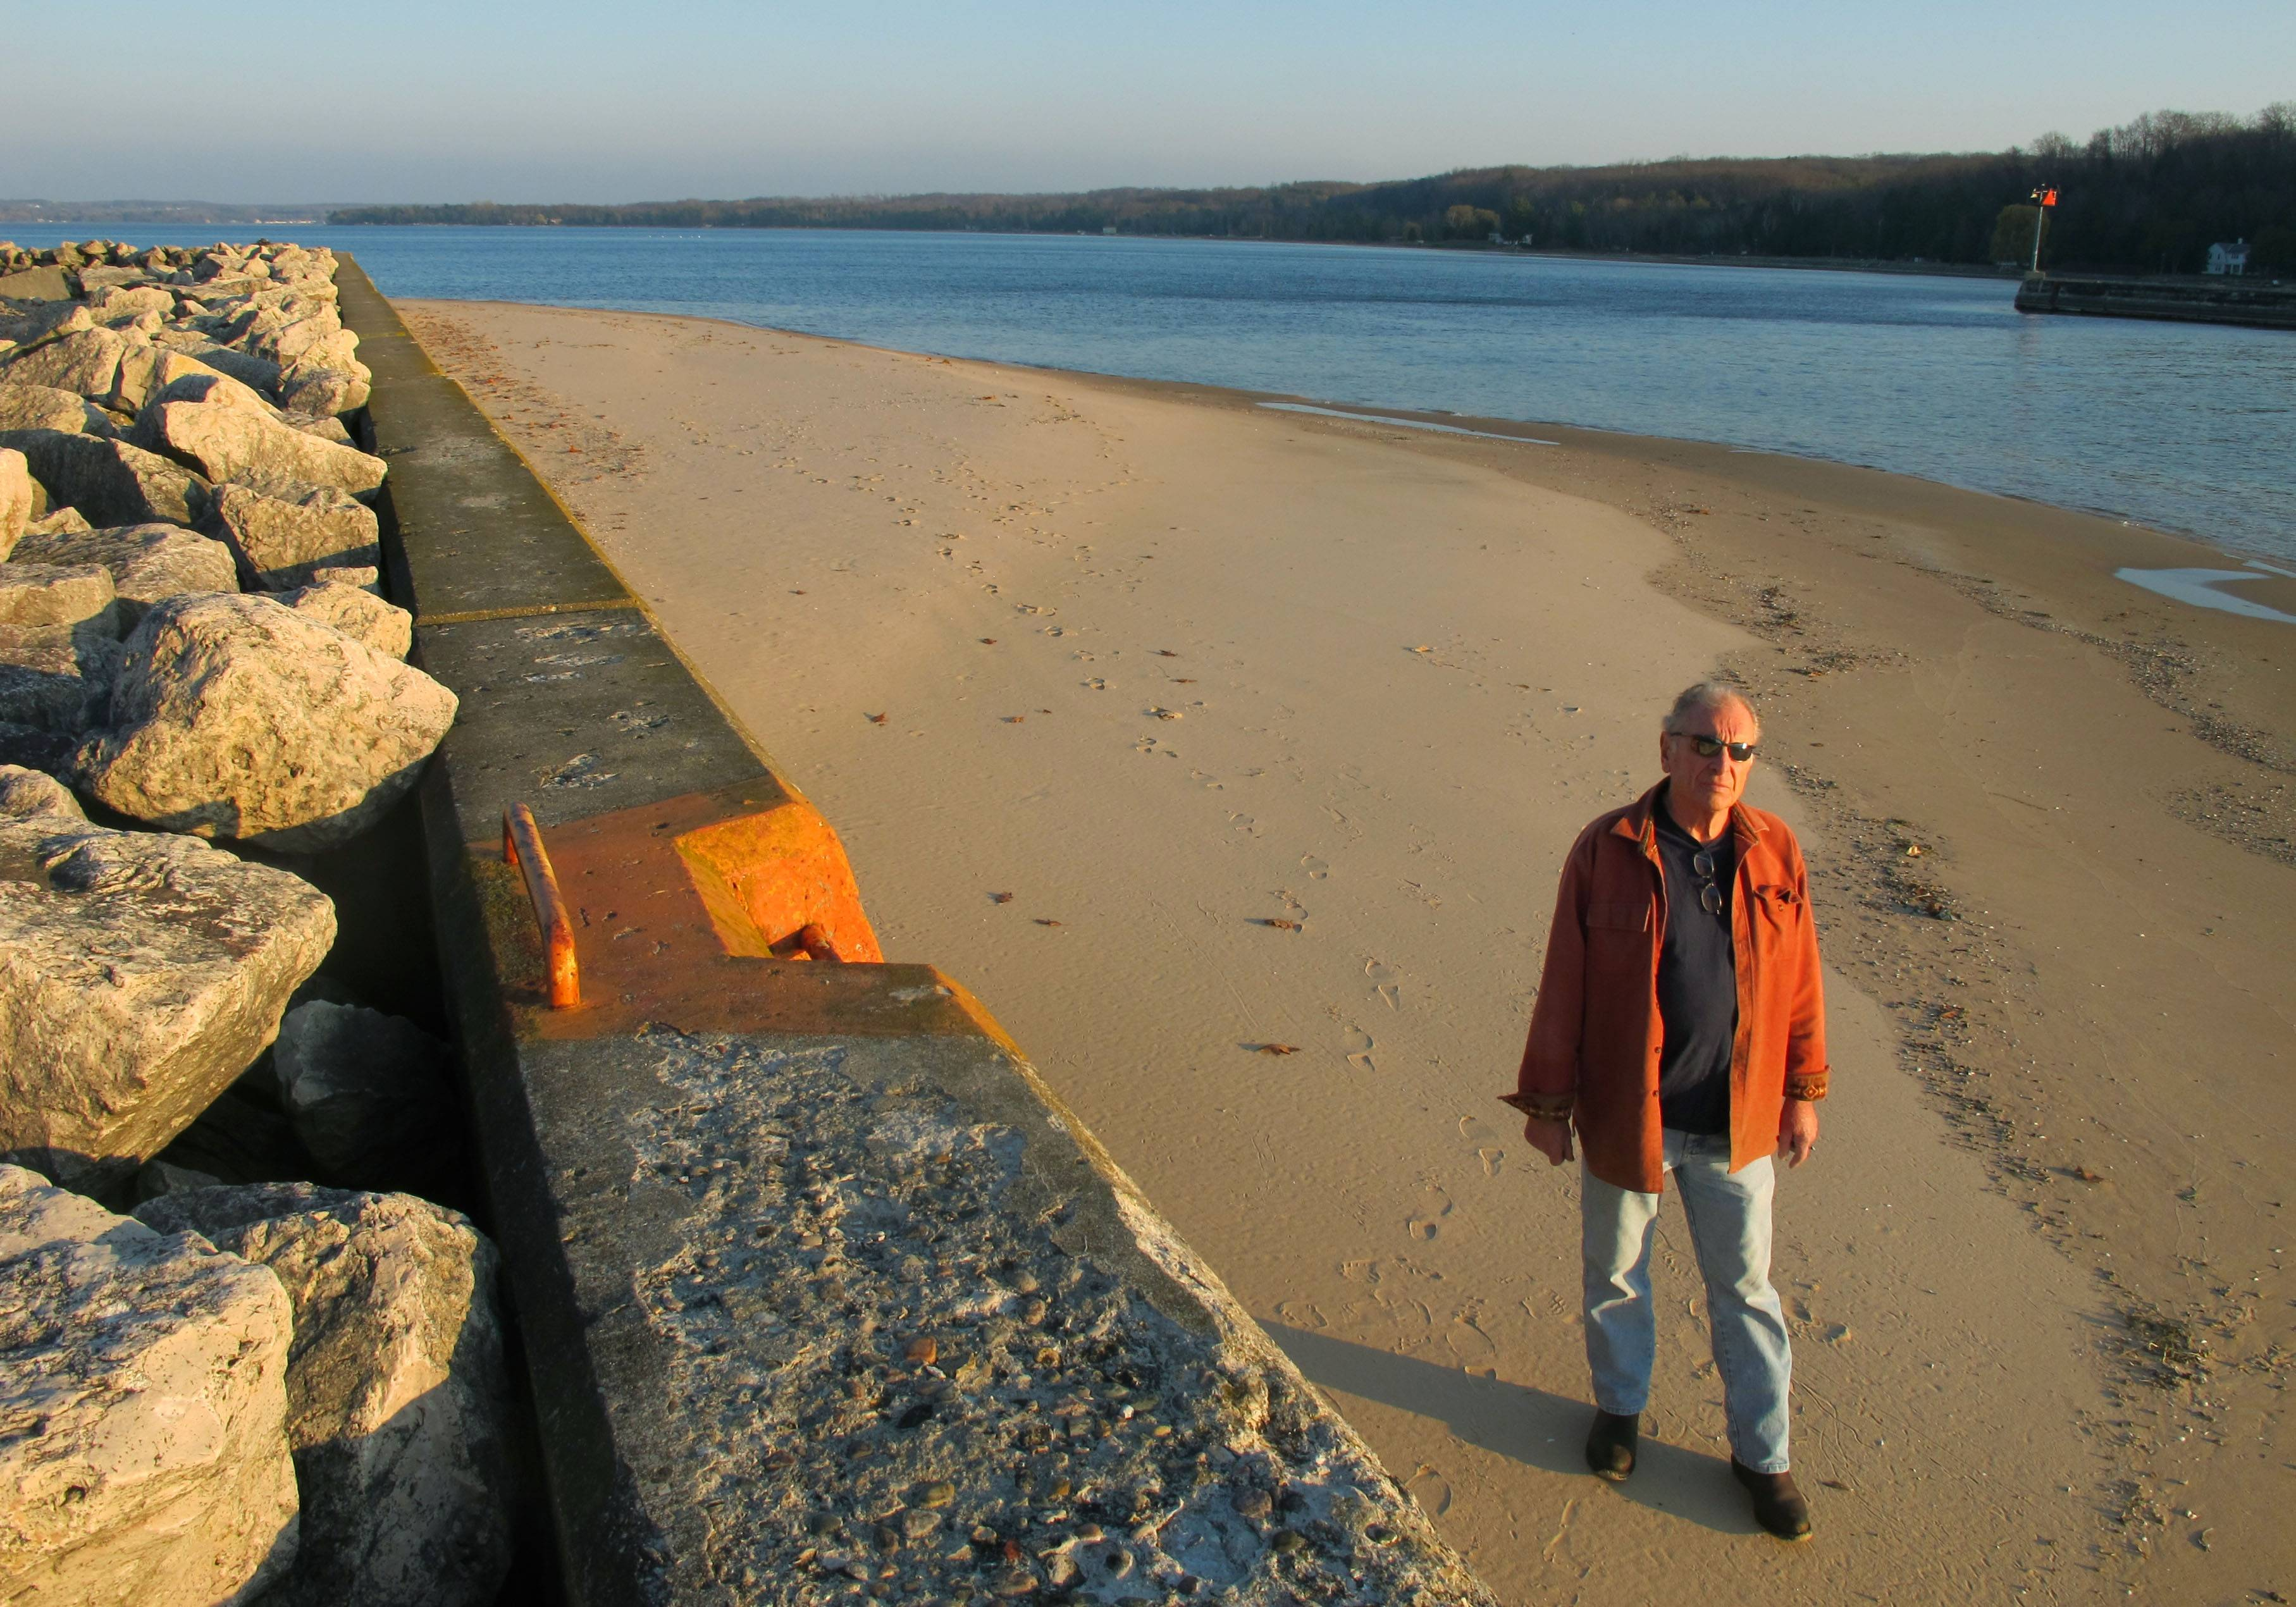 Jim Simons walks along a sand bar, exposed by low water levels on the Portage Lake channel that leads to Lake Michigan at Onekama, Mich. University of Michigan scientists will conduct a wide-ranging study on how Great Lakes communities can adapt to fluctuating water levels.